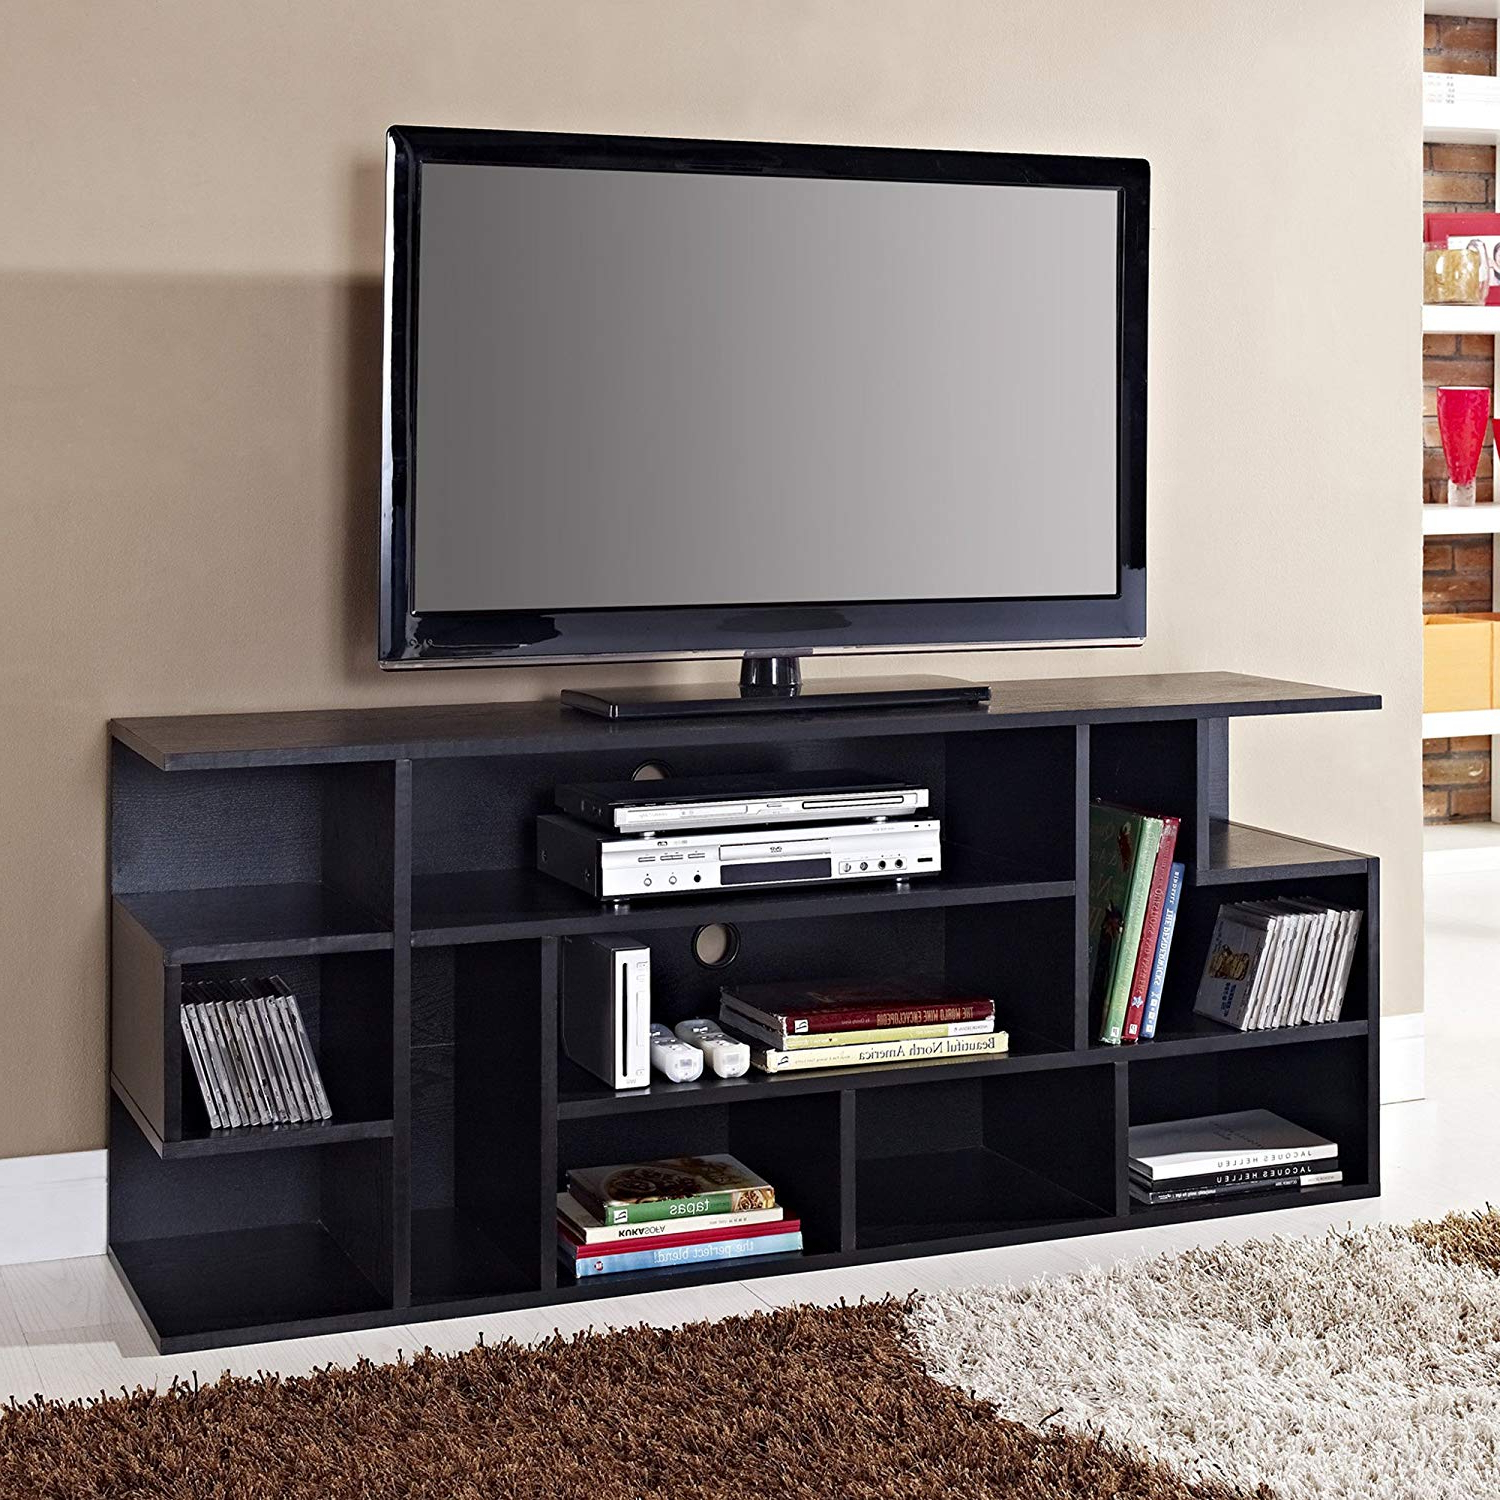 "Amazon: We Furniture 60"" Black Wood Tv Stand Console: Kitchen For Well Known Abbot 60 Inch Tv Stands (View 3 of 20)"